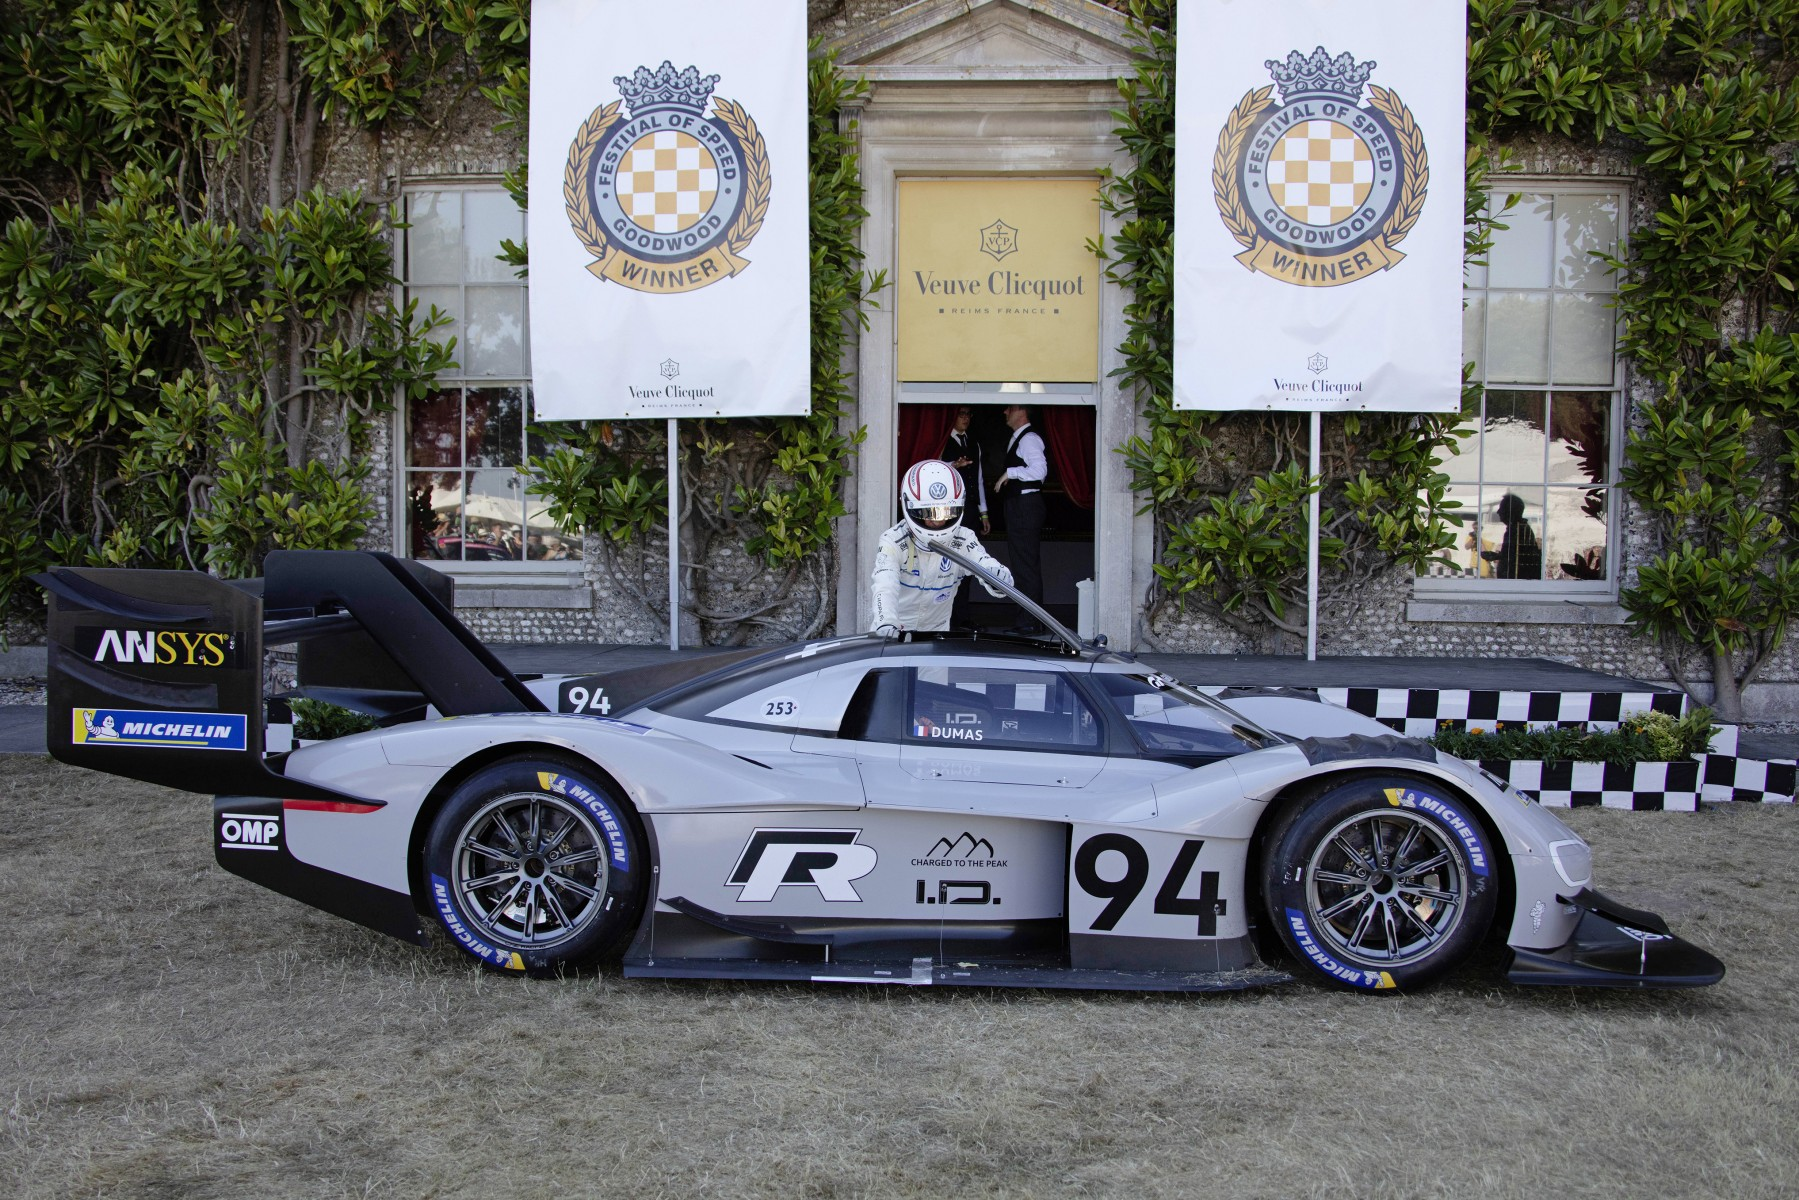 Volkswagen I.D. R Pikes Peak - Goodwood 2